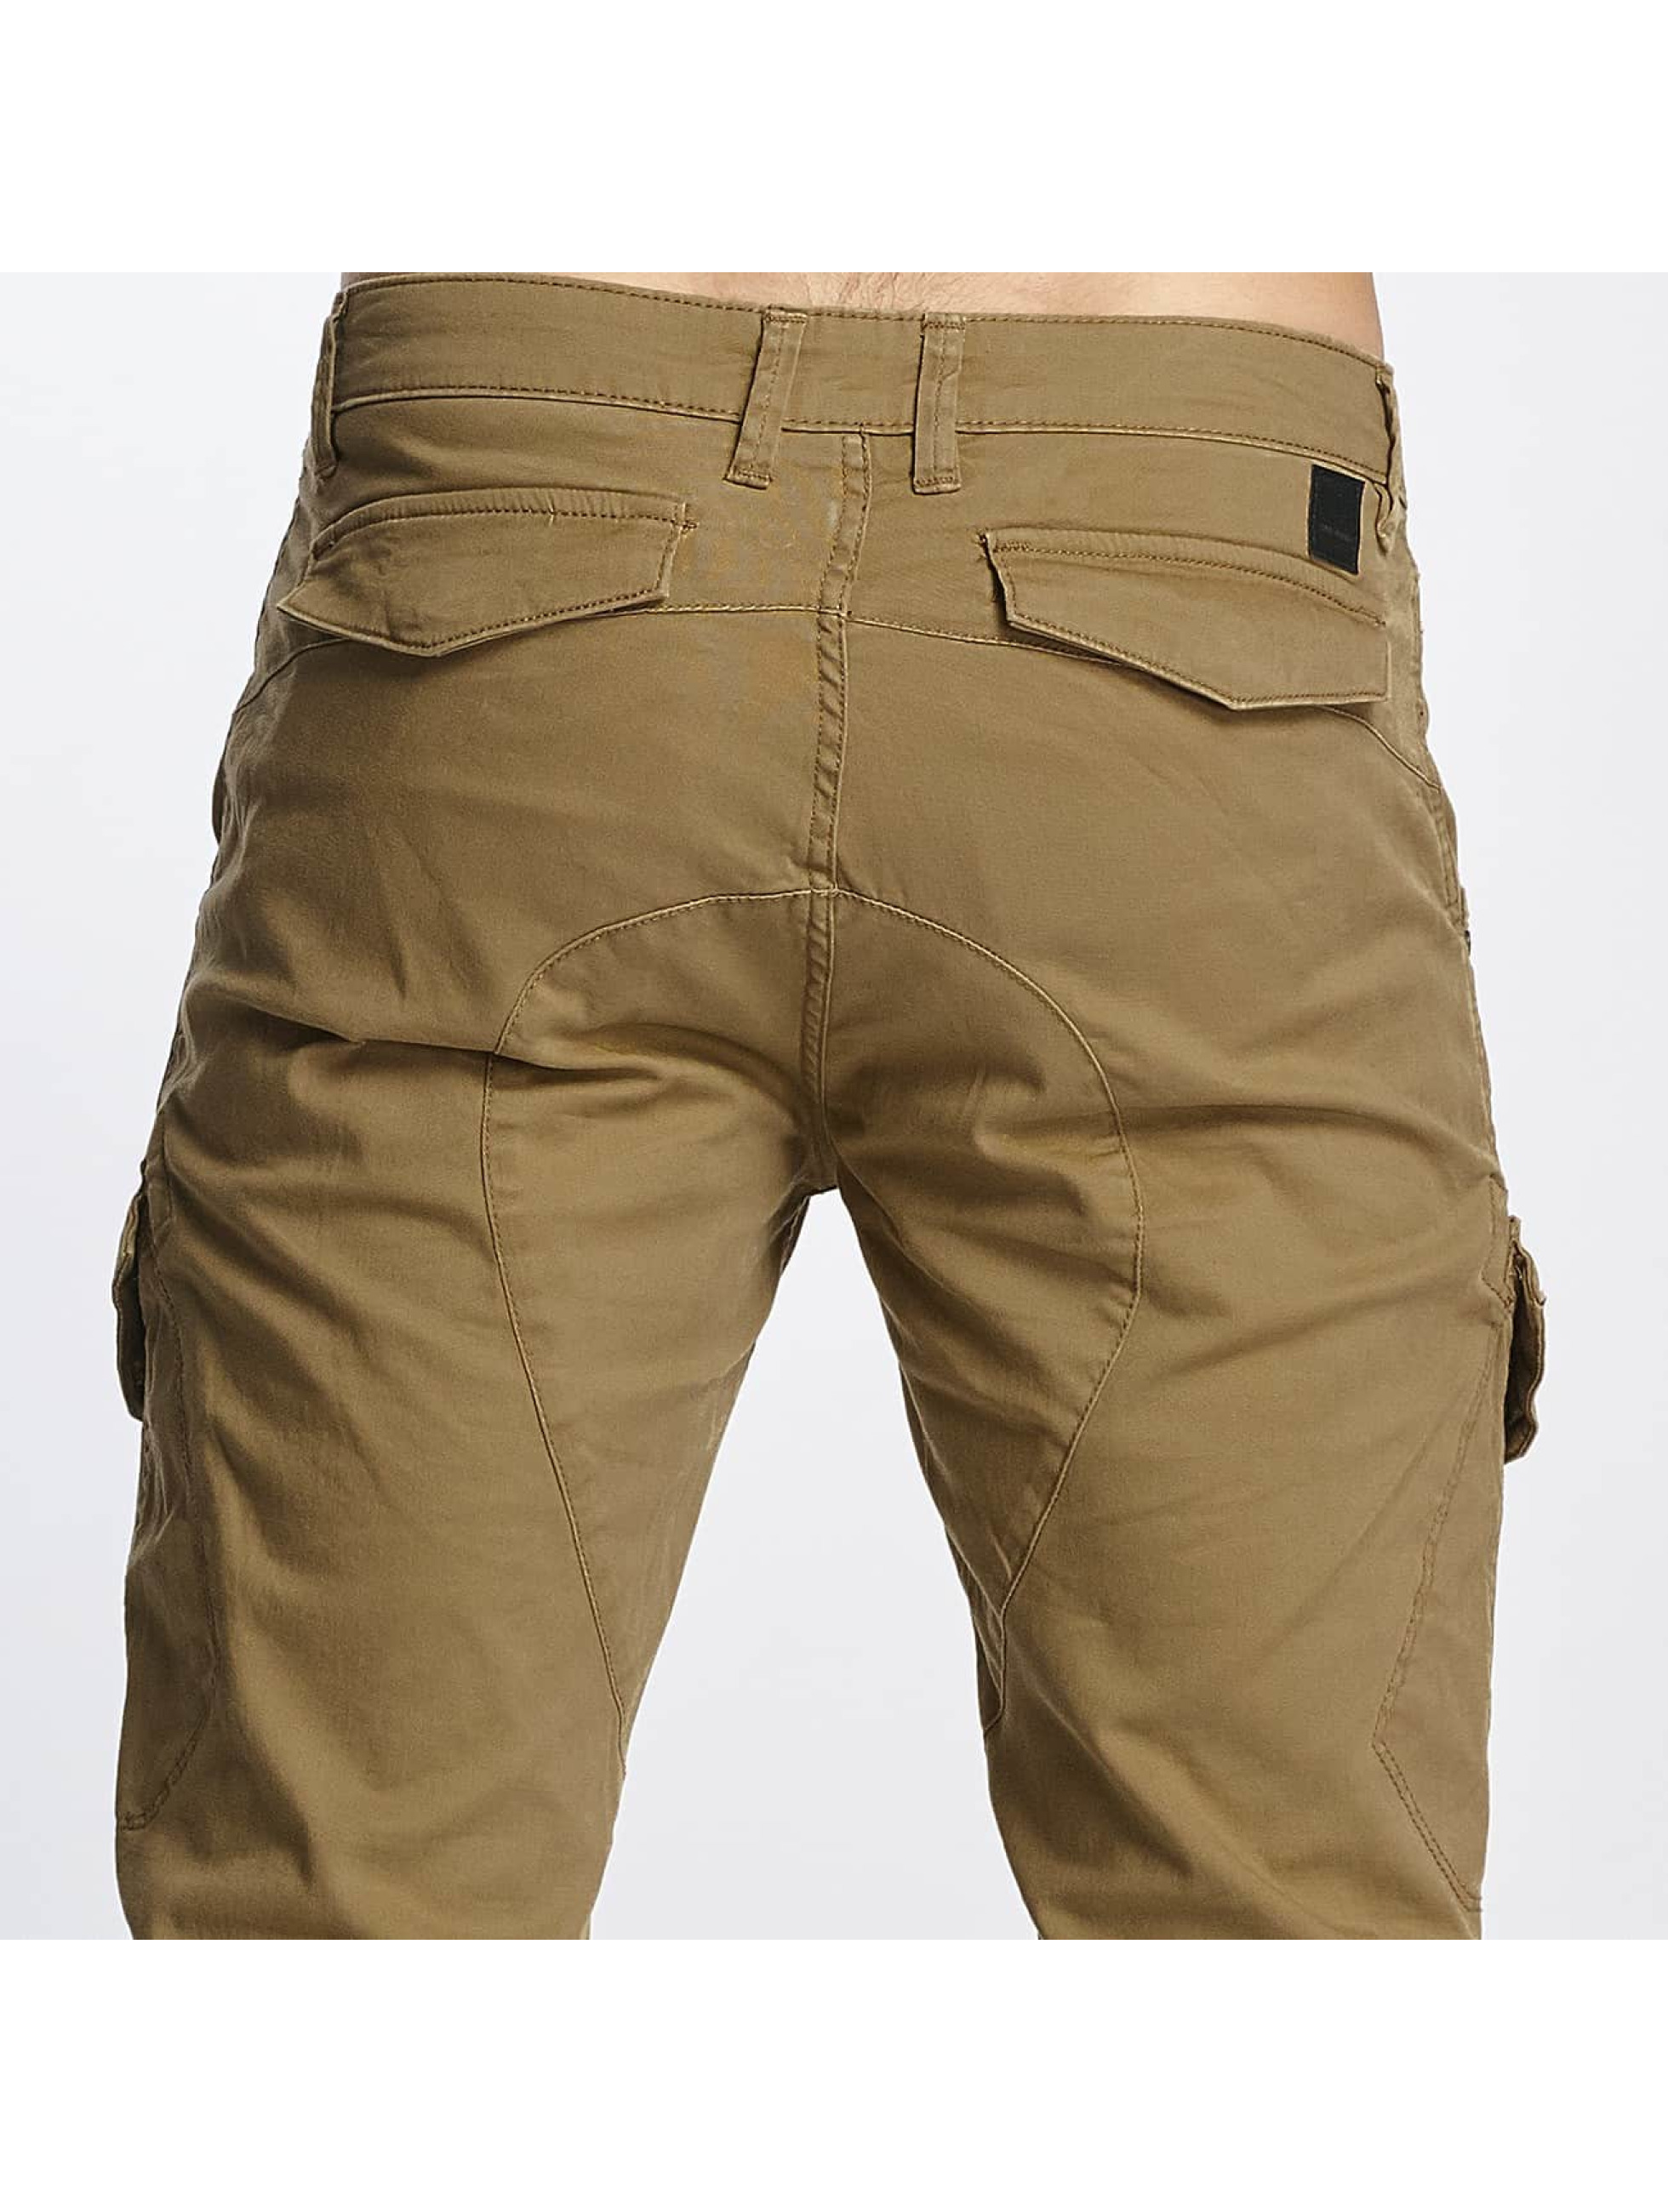 SHINE Original Cargobroek Slim beige